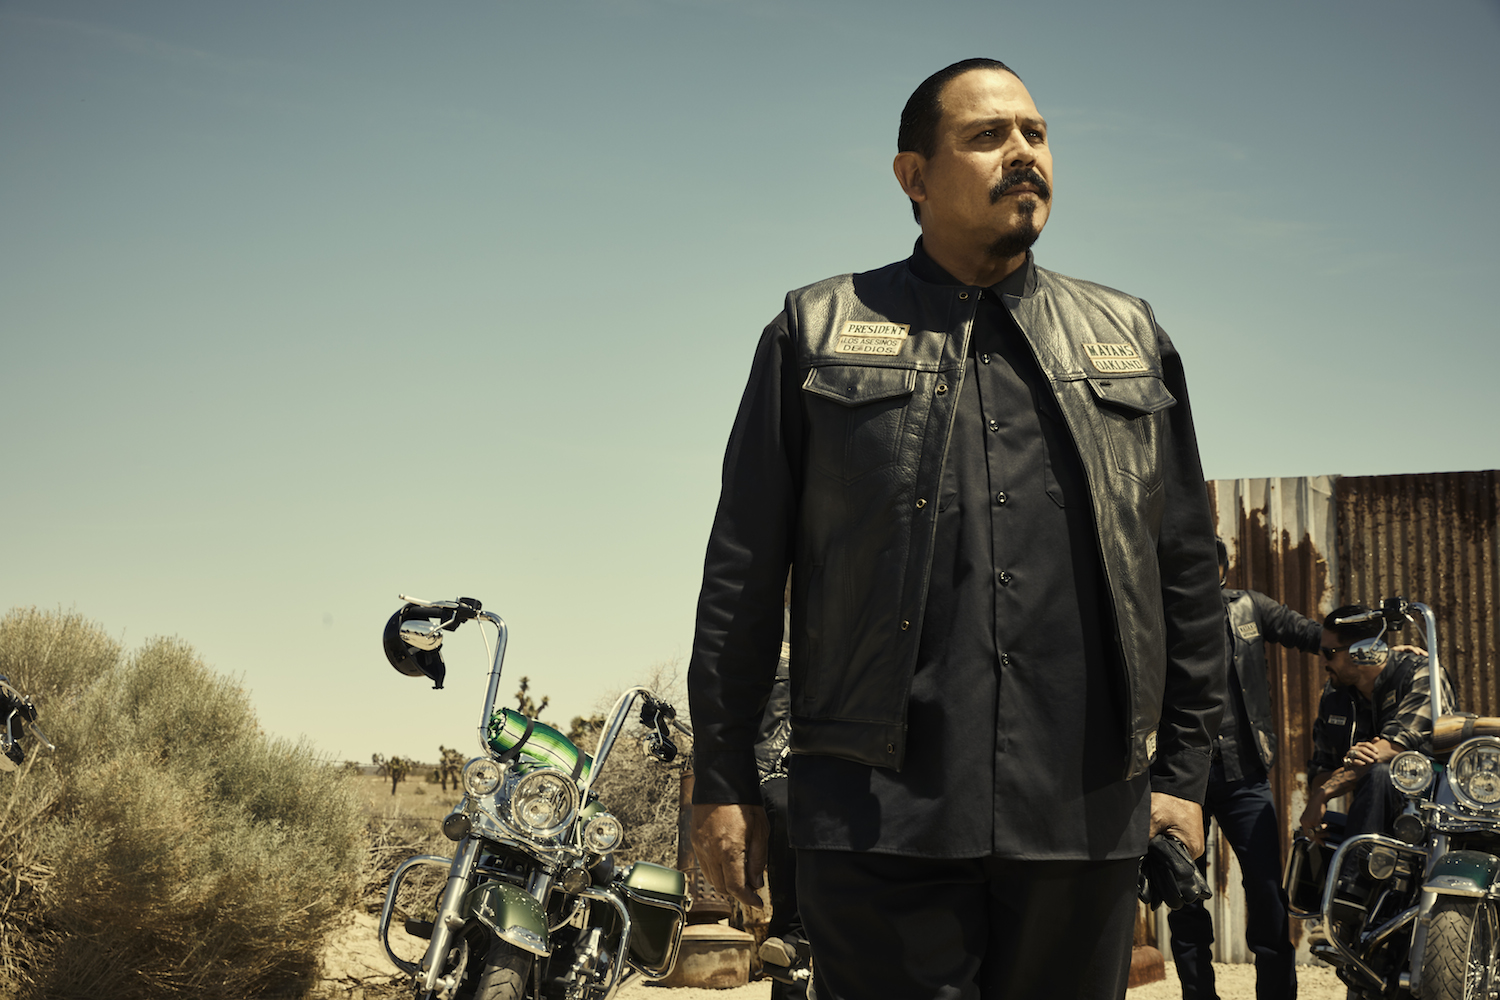 First Trailer for 'Sons of Anarchy' Spinoff Featuring Latino Motorcycle Club 'Mayans MC' Is Finally Here